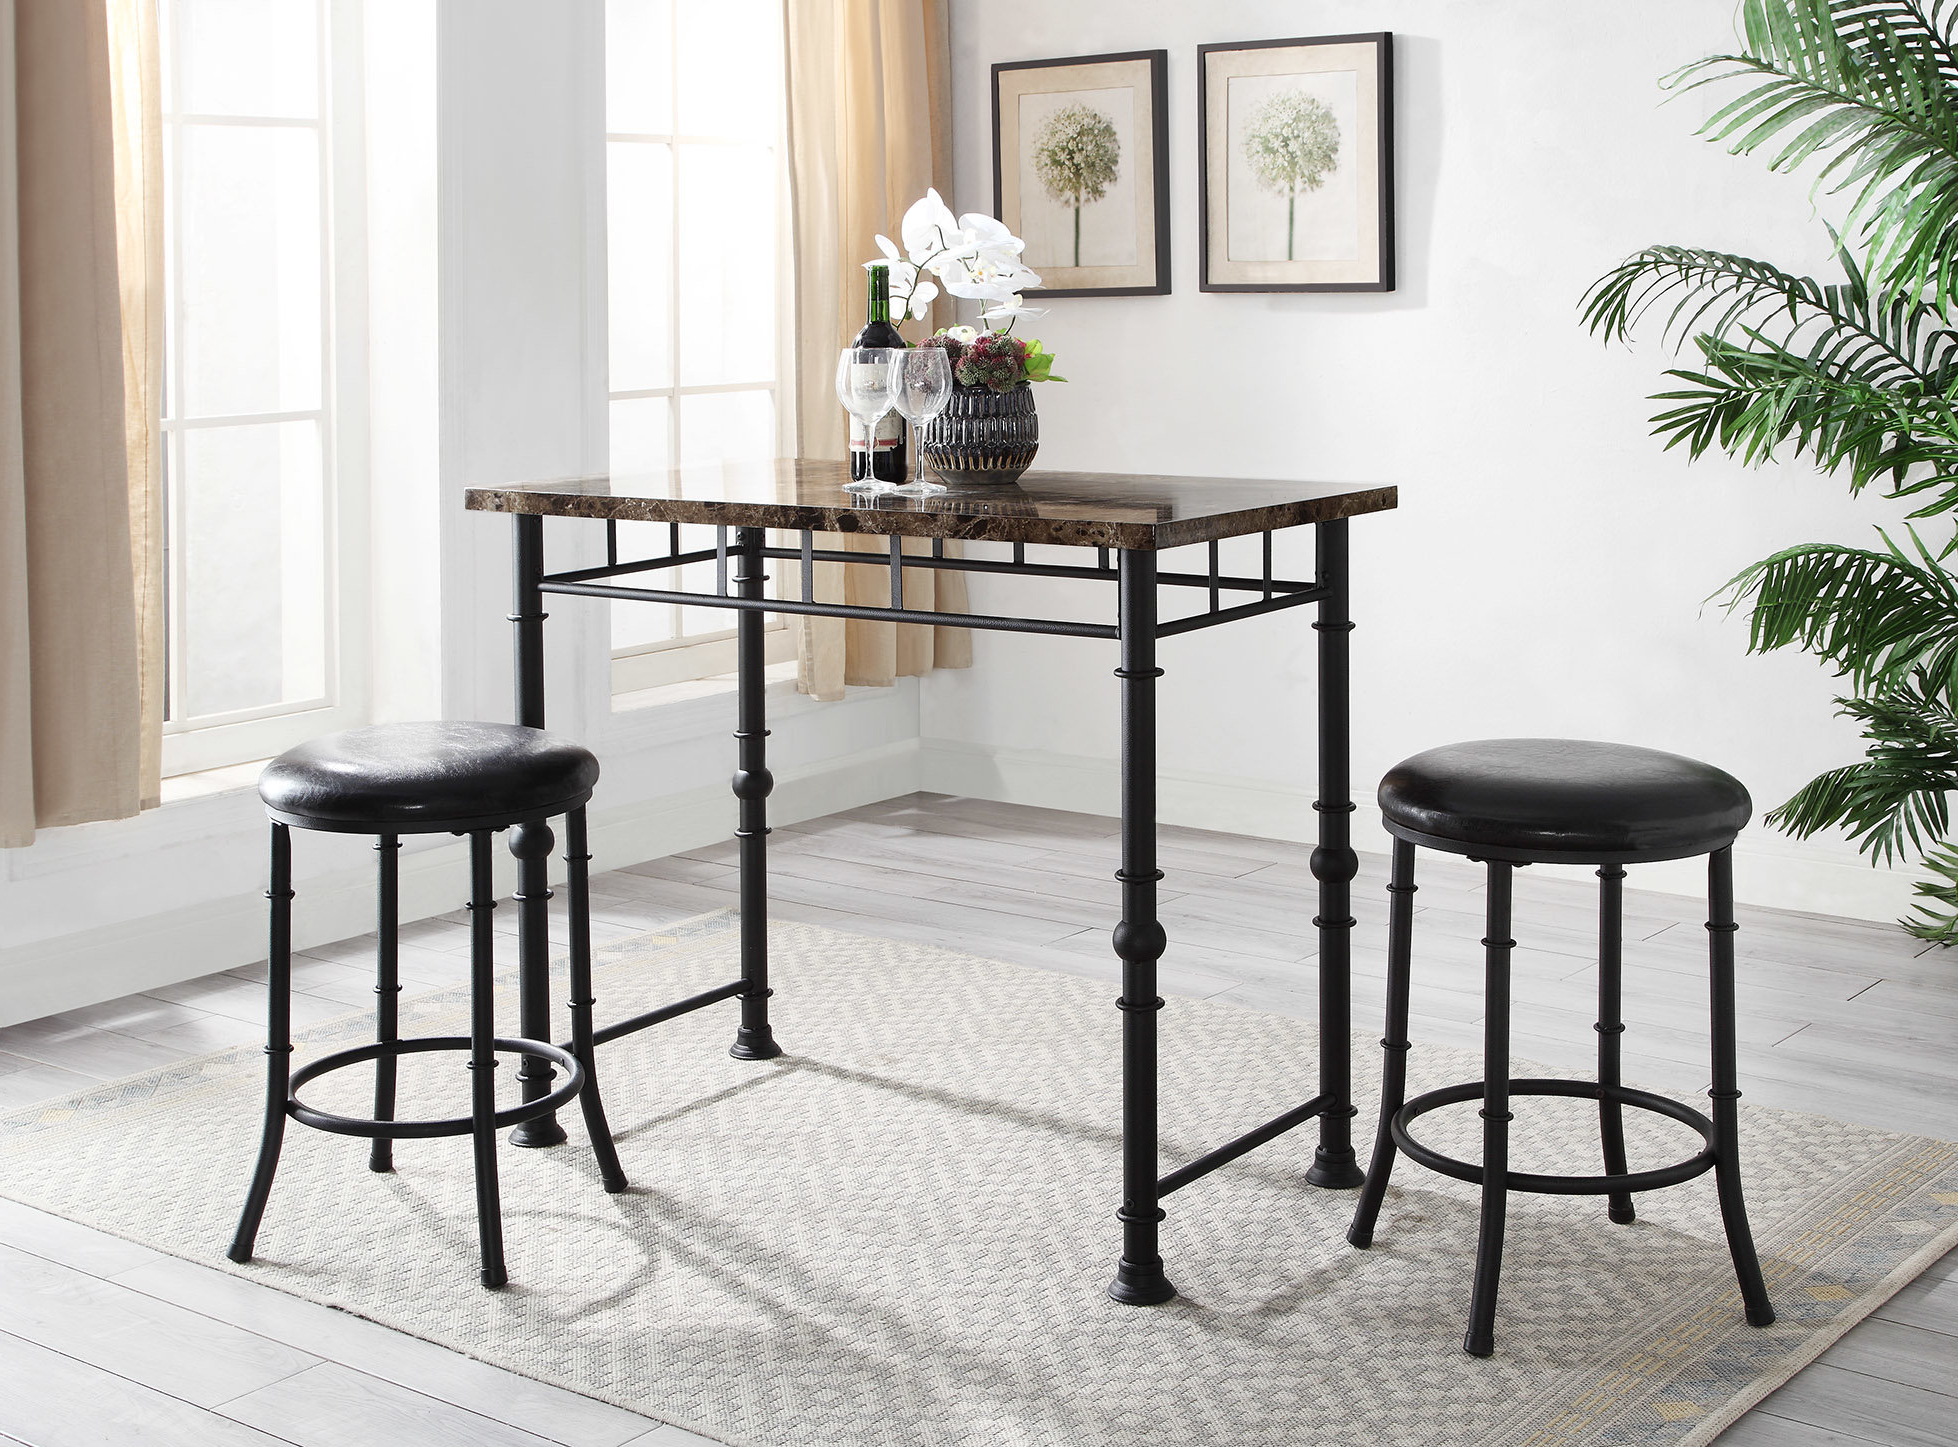 Details About Williston Forge Giles Dining Set inside Well-liked Debby Small Space 3 Piece Dining Sets